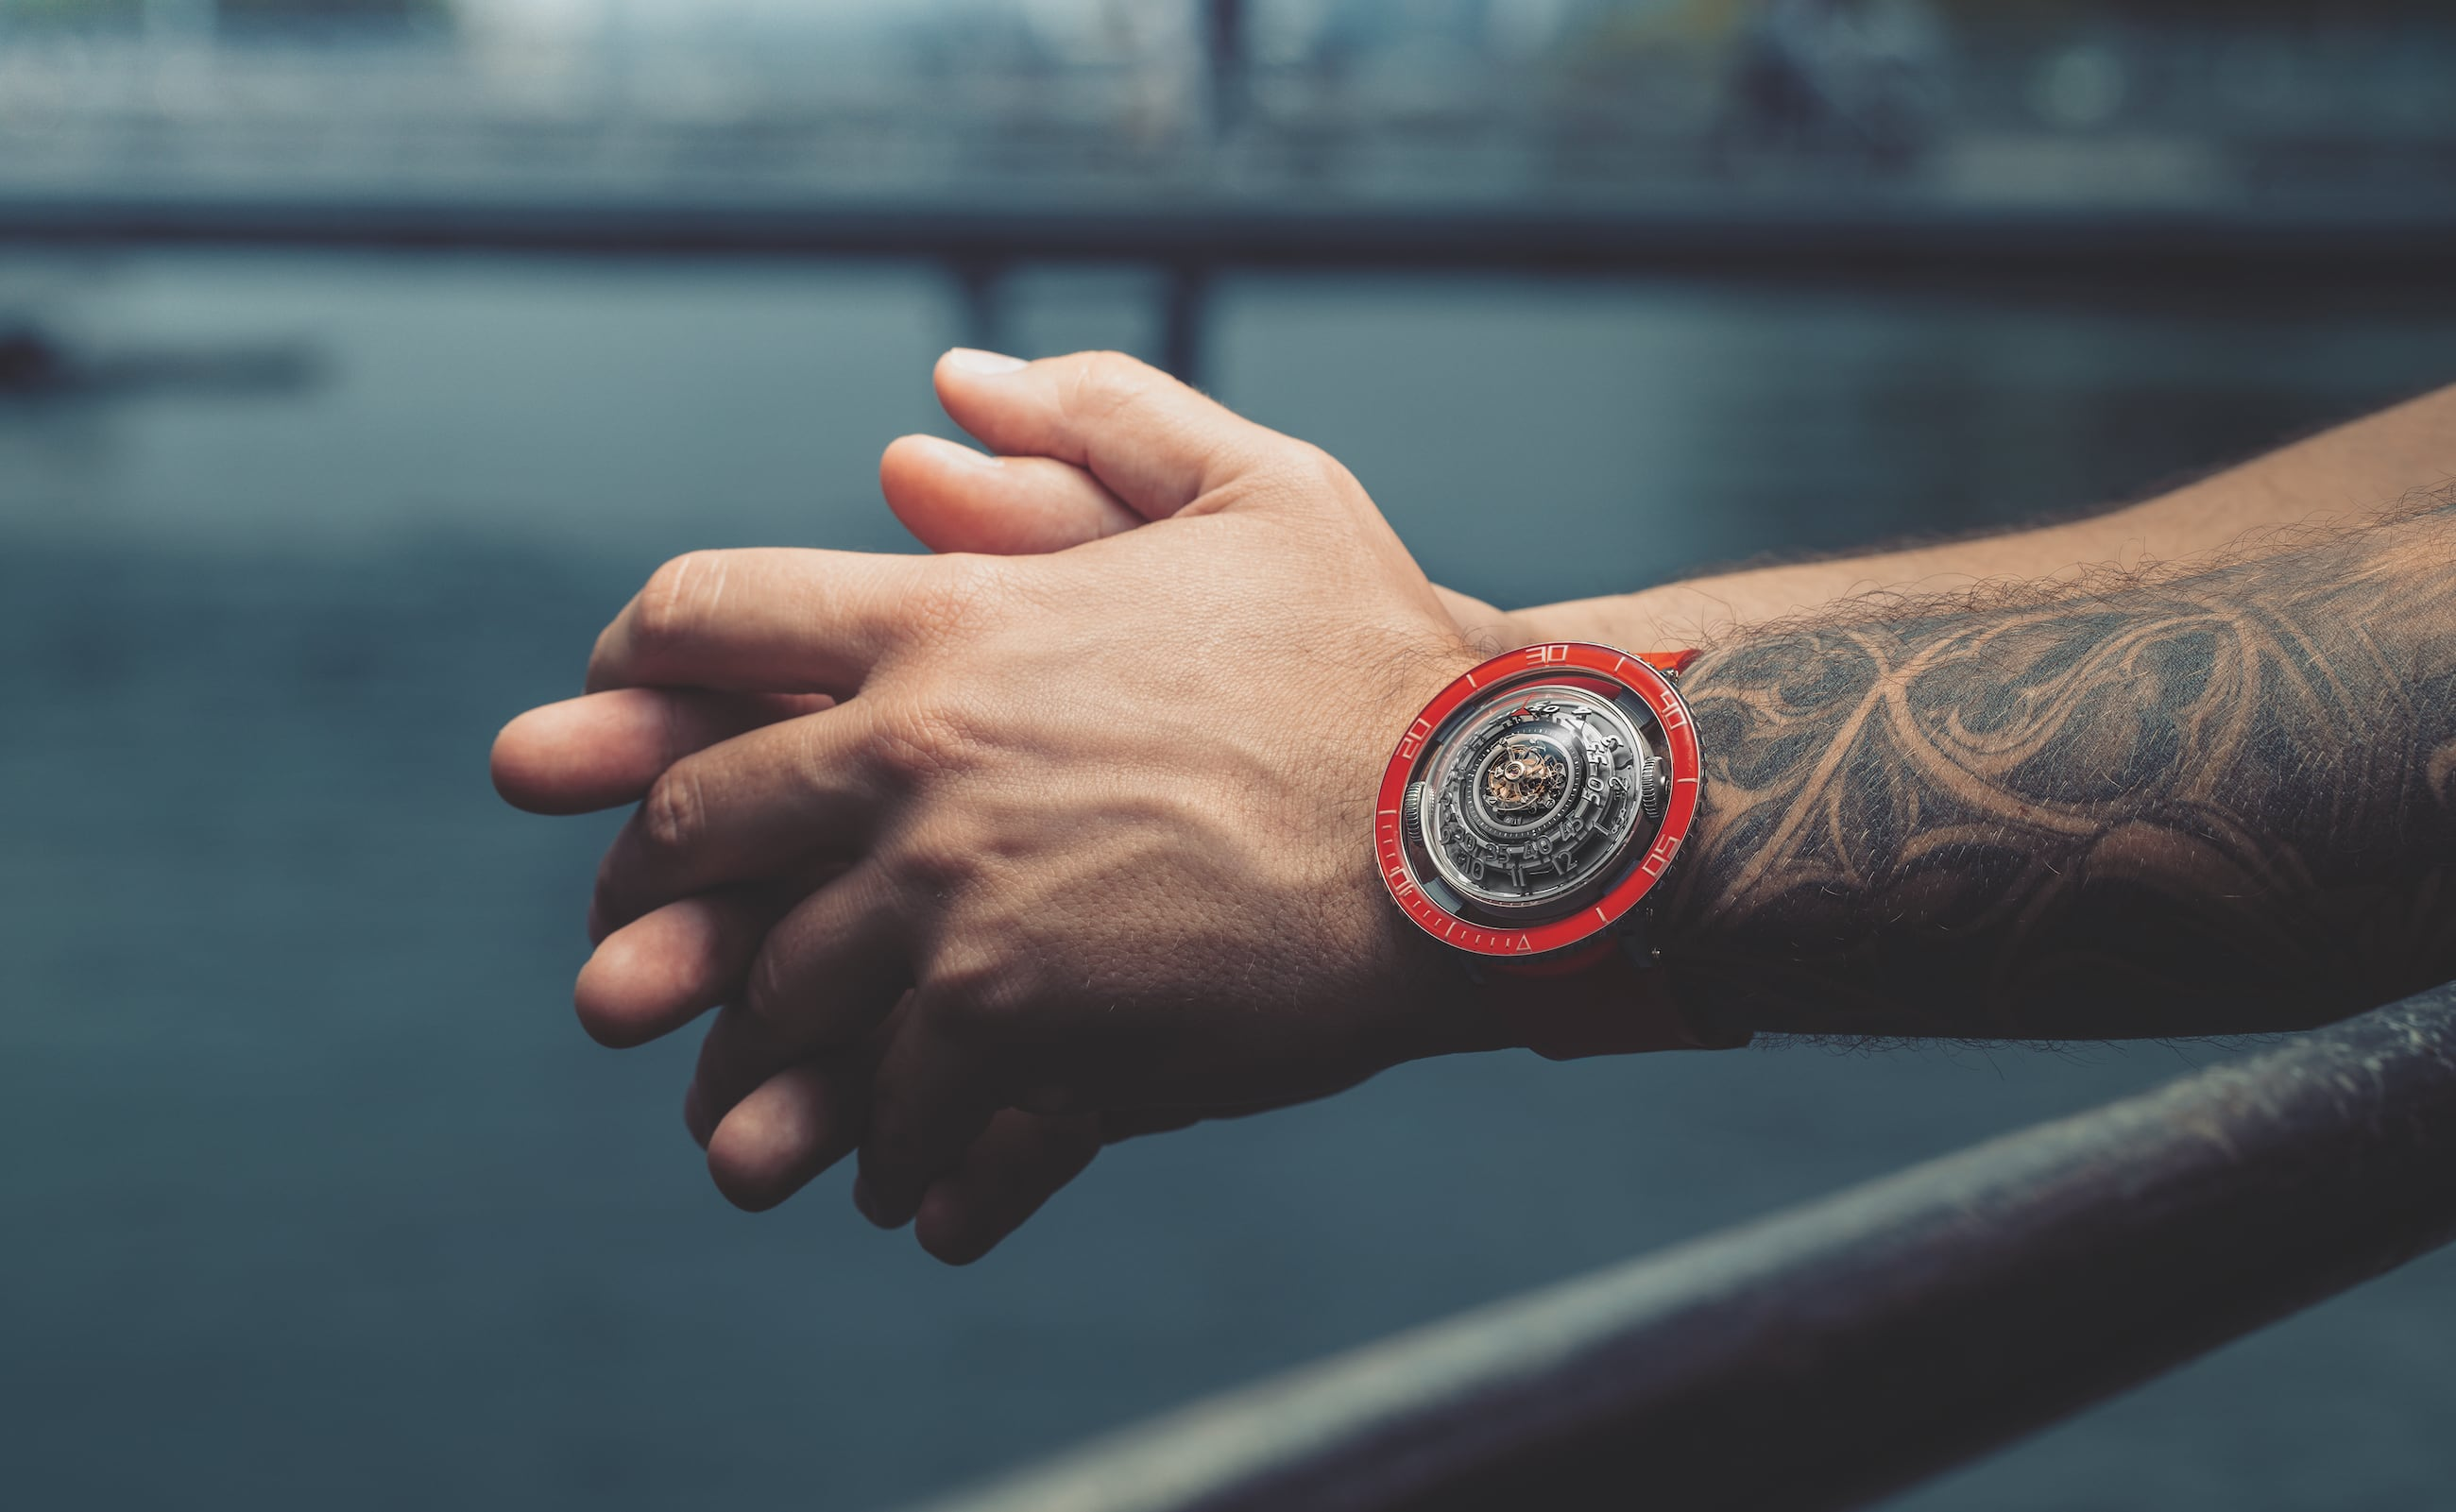 MB&F HM7 Aquapod Jellyfish-Inspired Watch imitates ripples in the water